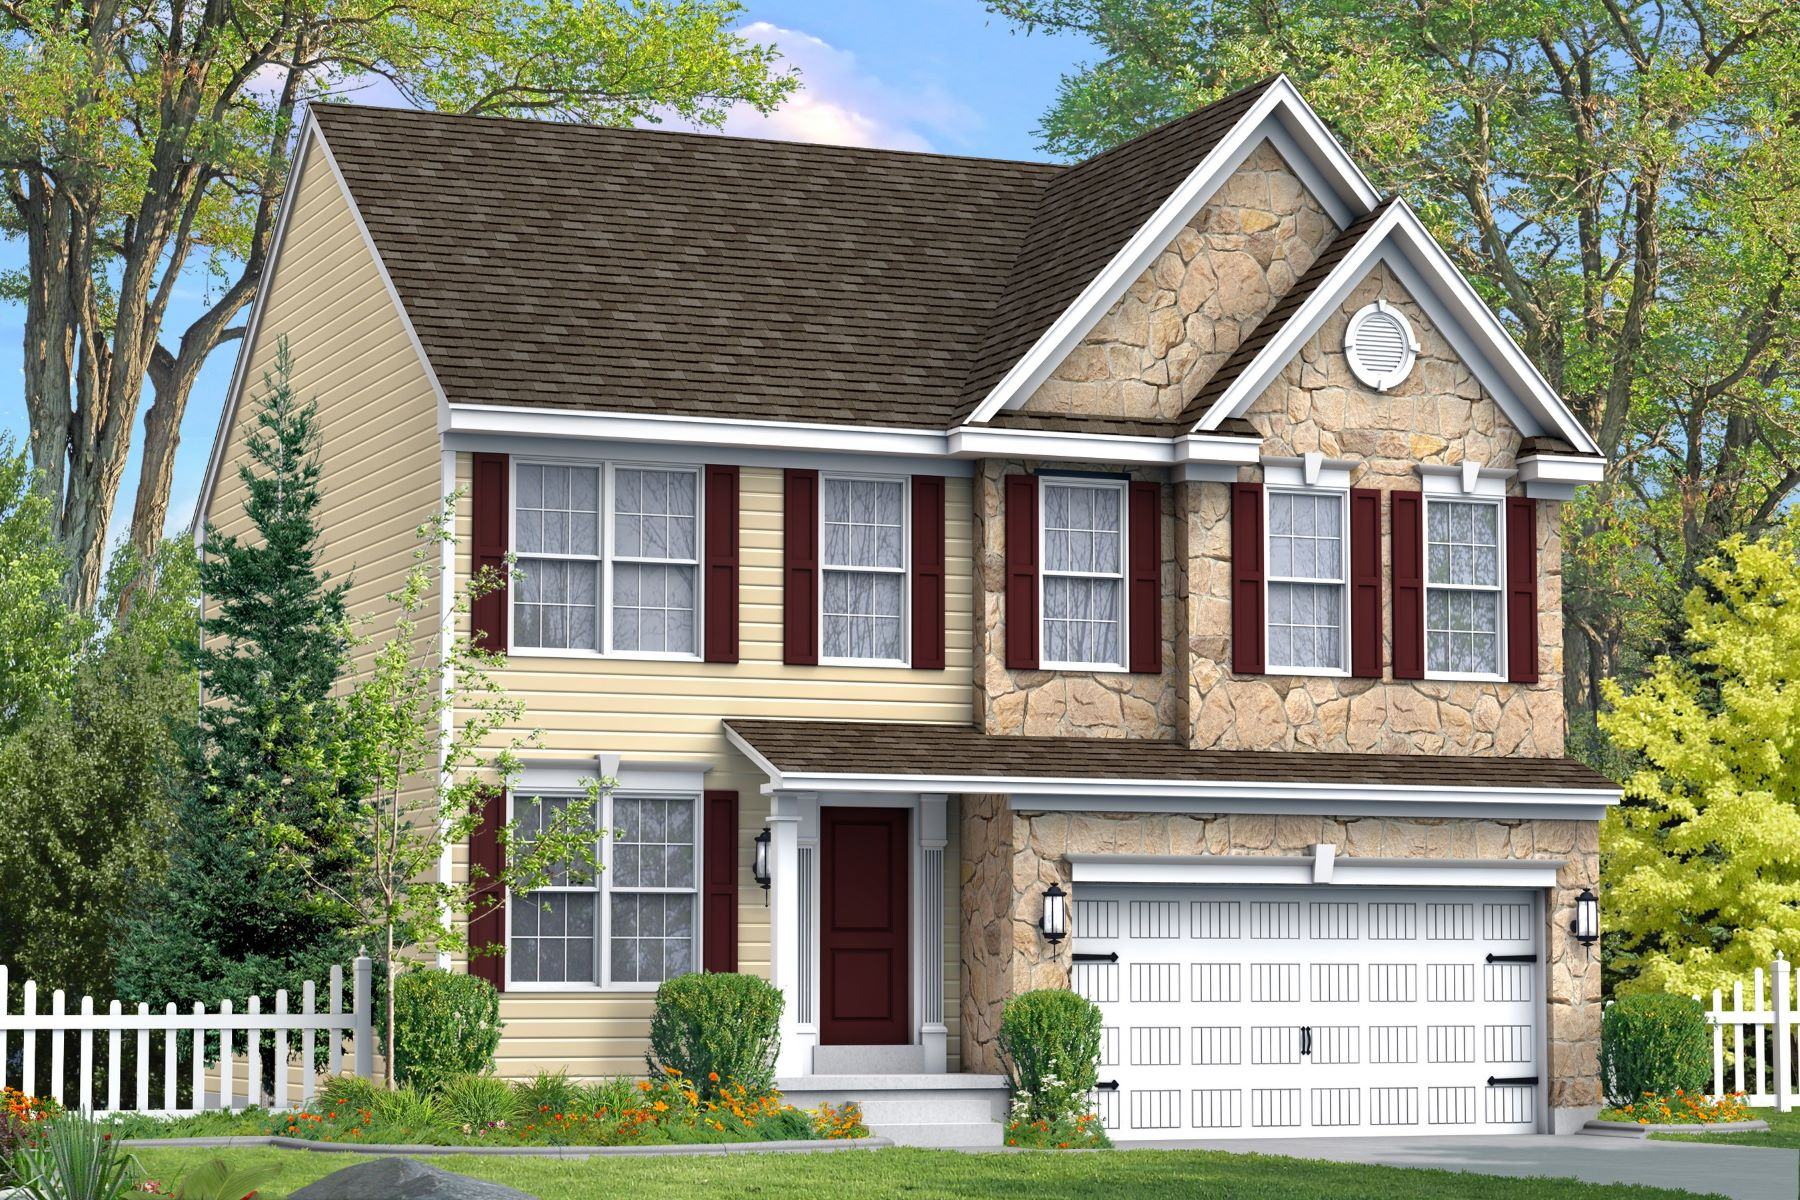 Single Family Homes for Sale at New Construction Colonial in Briarcliff 561 Sandpiper Lane, New Cumberland, Pennsylvania 17070 United States